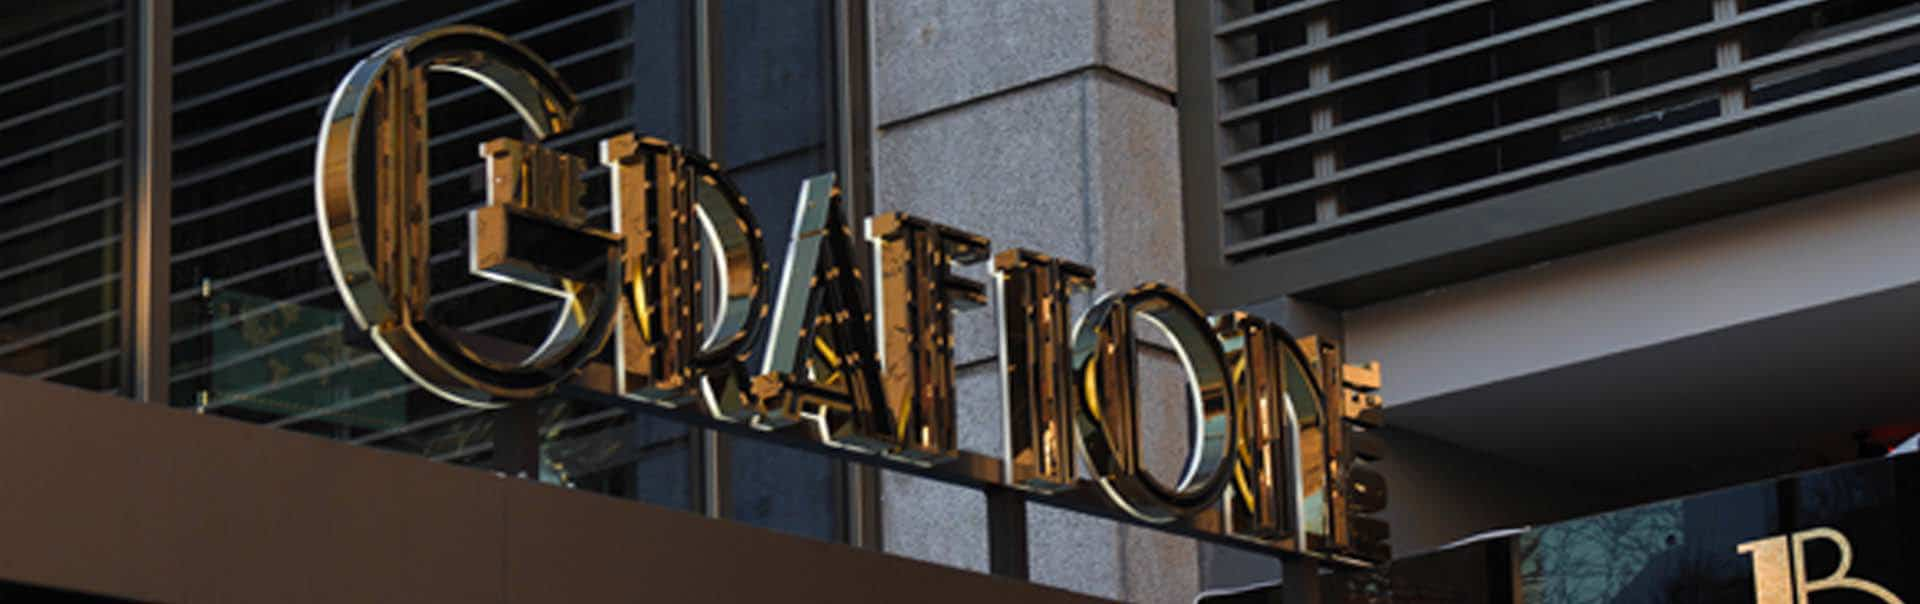 Mirror finish skyline sign at Grafton Hotel, Dublin